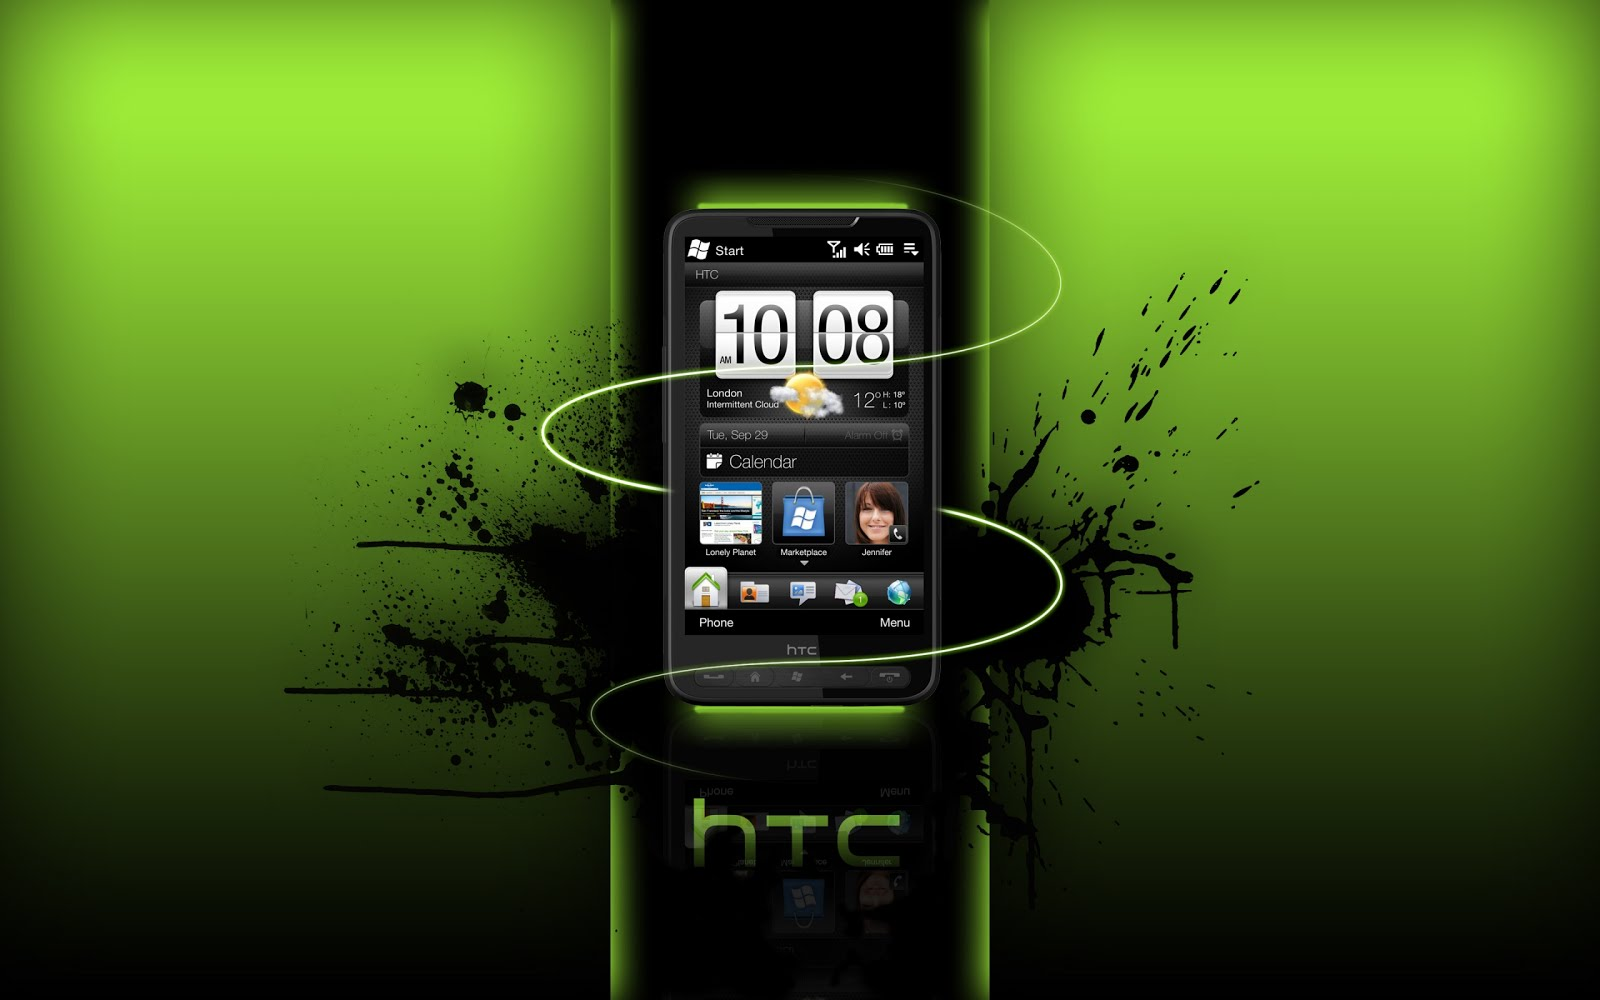 Tel Fono Inteligente Htc Con Windows Phone Smartphone